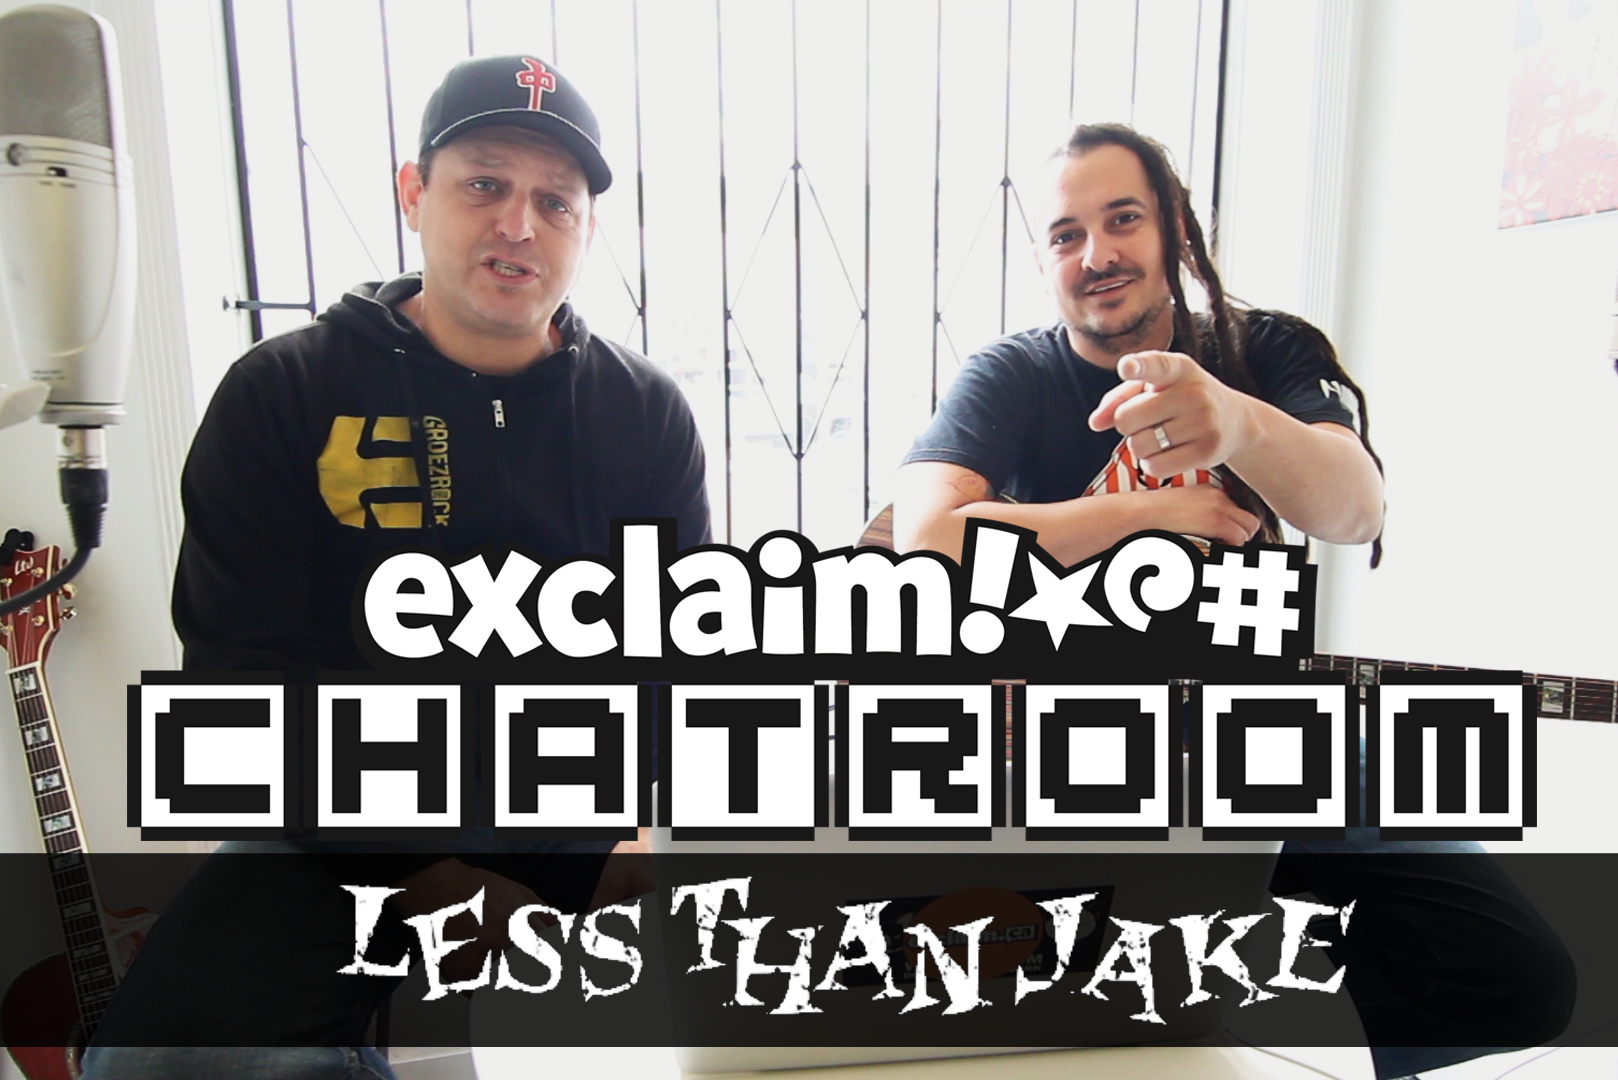 Less Than Jake on Exclaim! TV Chatroom